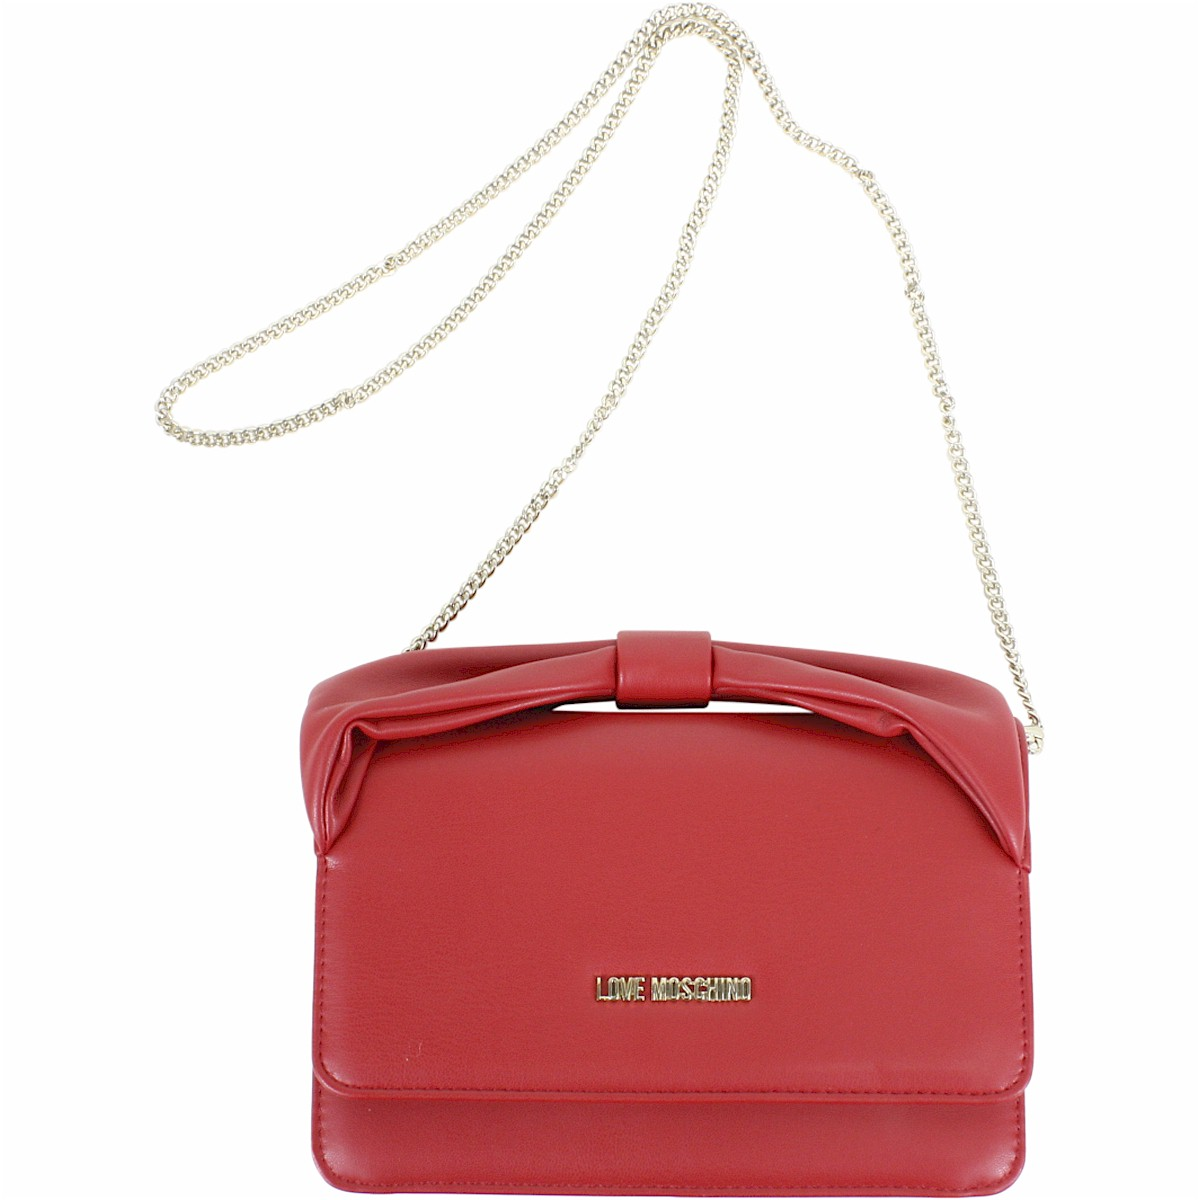 Image of Love Moschino Women's Bow Handle Flap Over Chain Crossbody Handbag - Red - 5.5H x 8.5L x 2D in